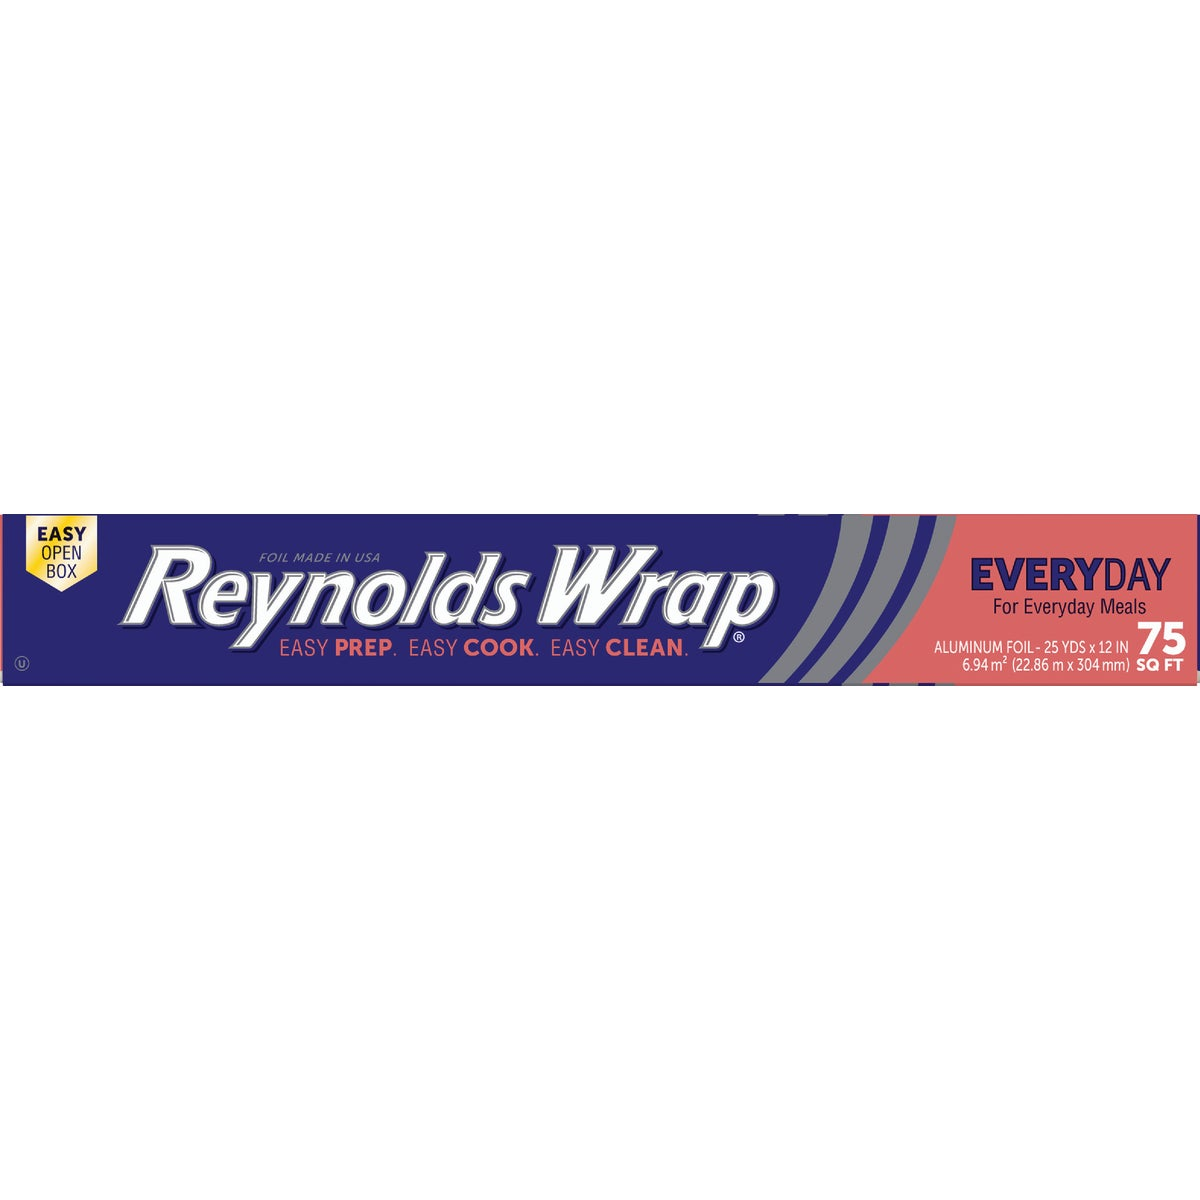 75SQ FT ALUMINUM FOIL - 8015 by Reynolds Pkg. Group